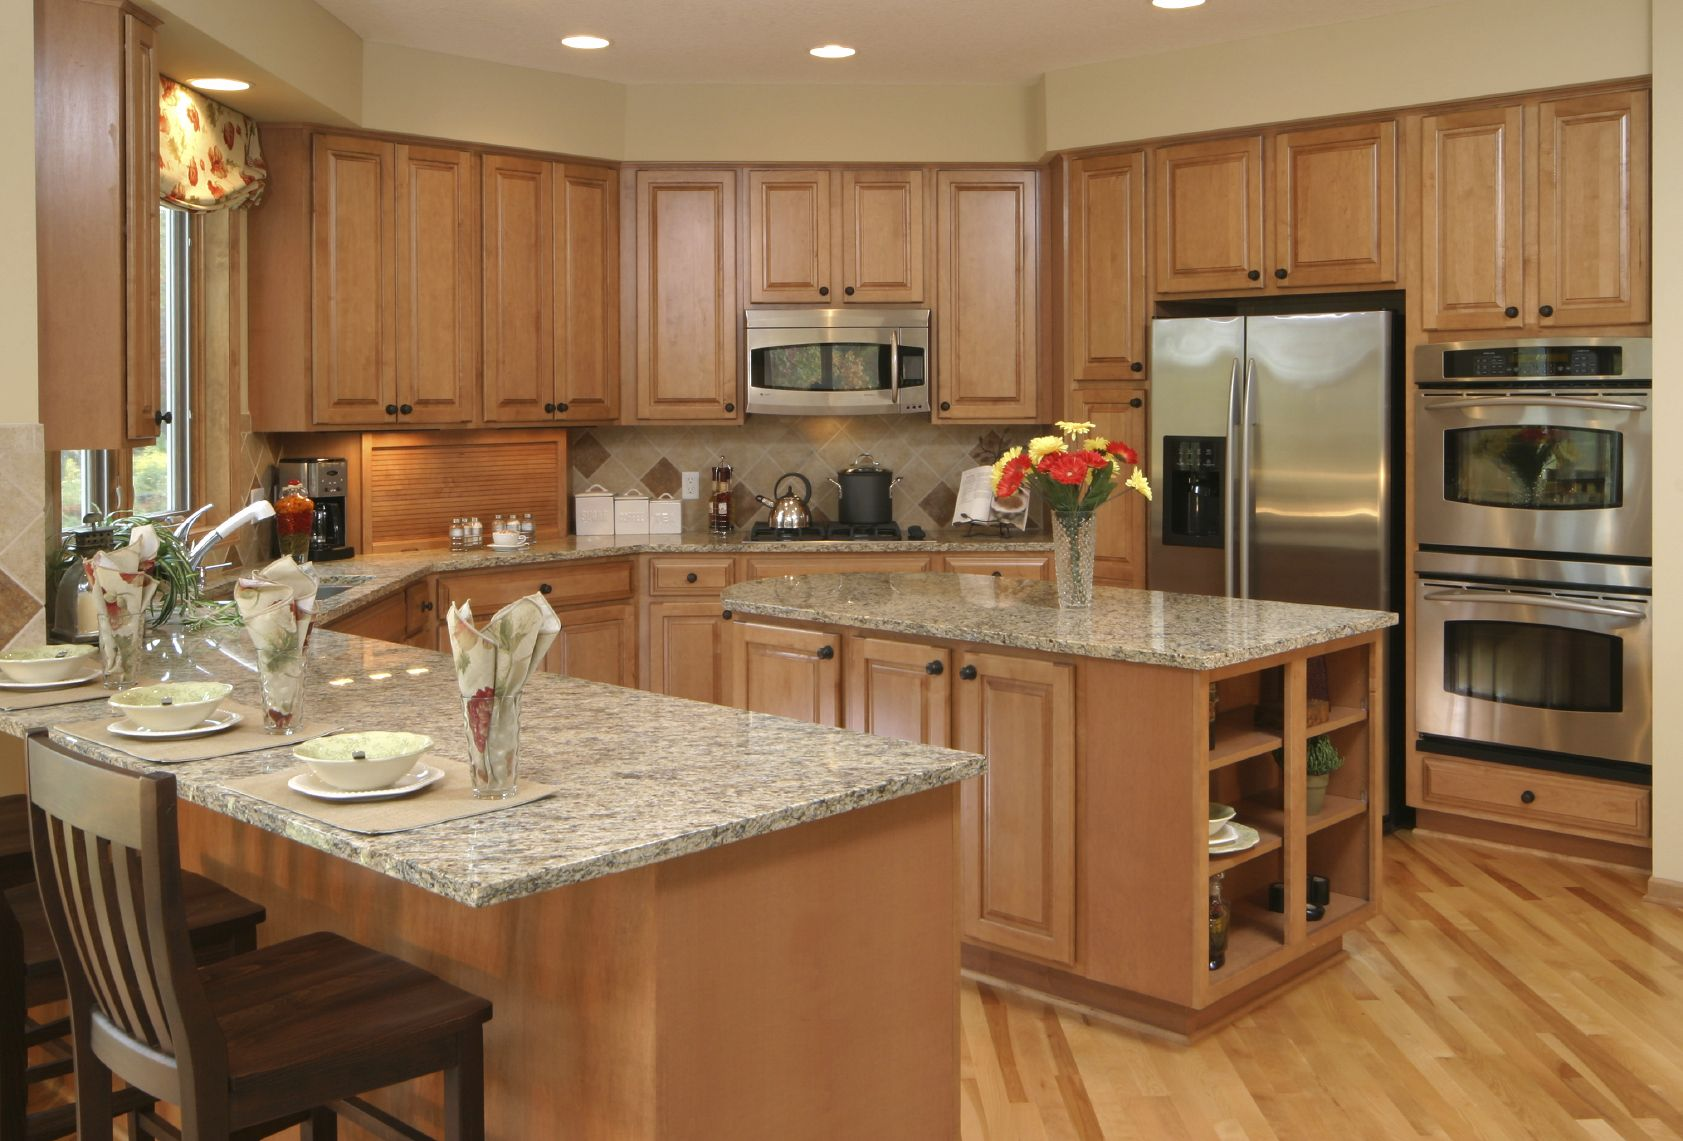 U shaped kitchen, Marble countertops and ountertops on Pinterest - ^